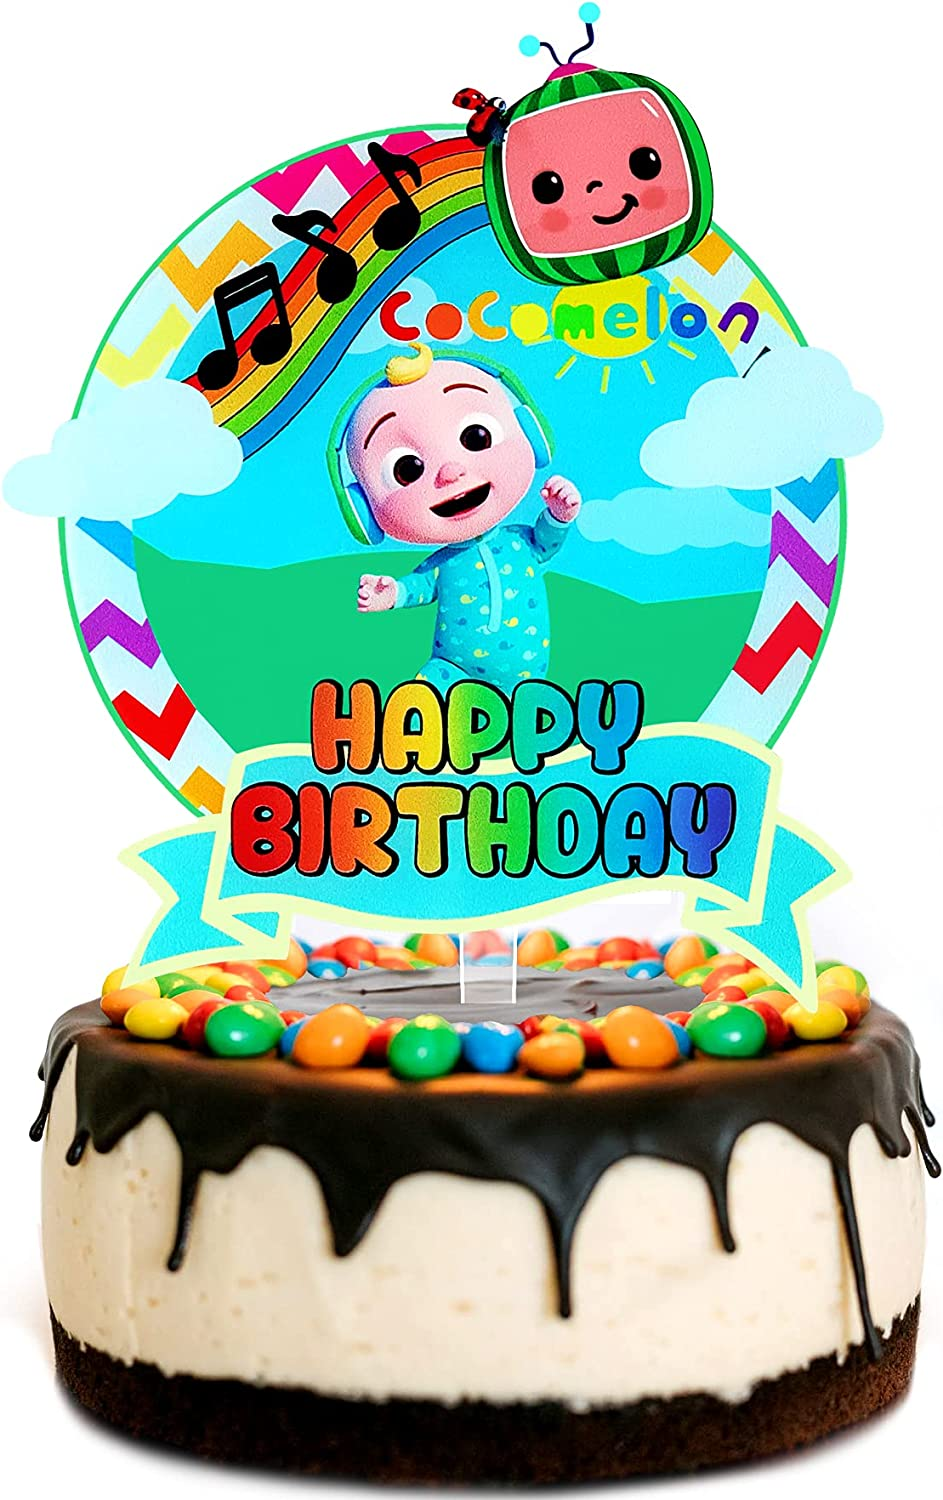 Cartoon Birthday Cake Topper for 1st Birthda 2nd El Paso Mall 4th 6th 3rd 5th Free shipping anywhere in the nation